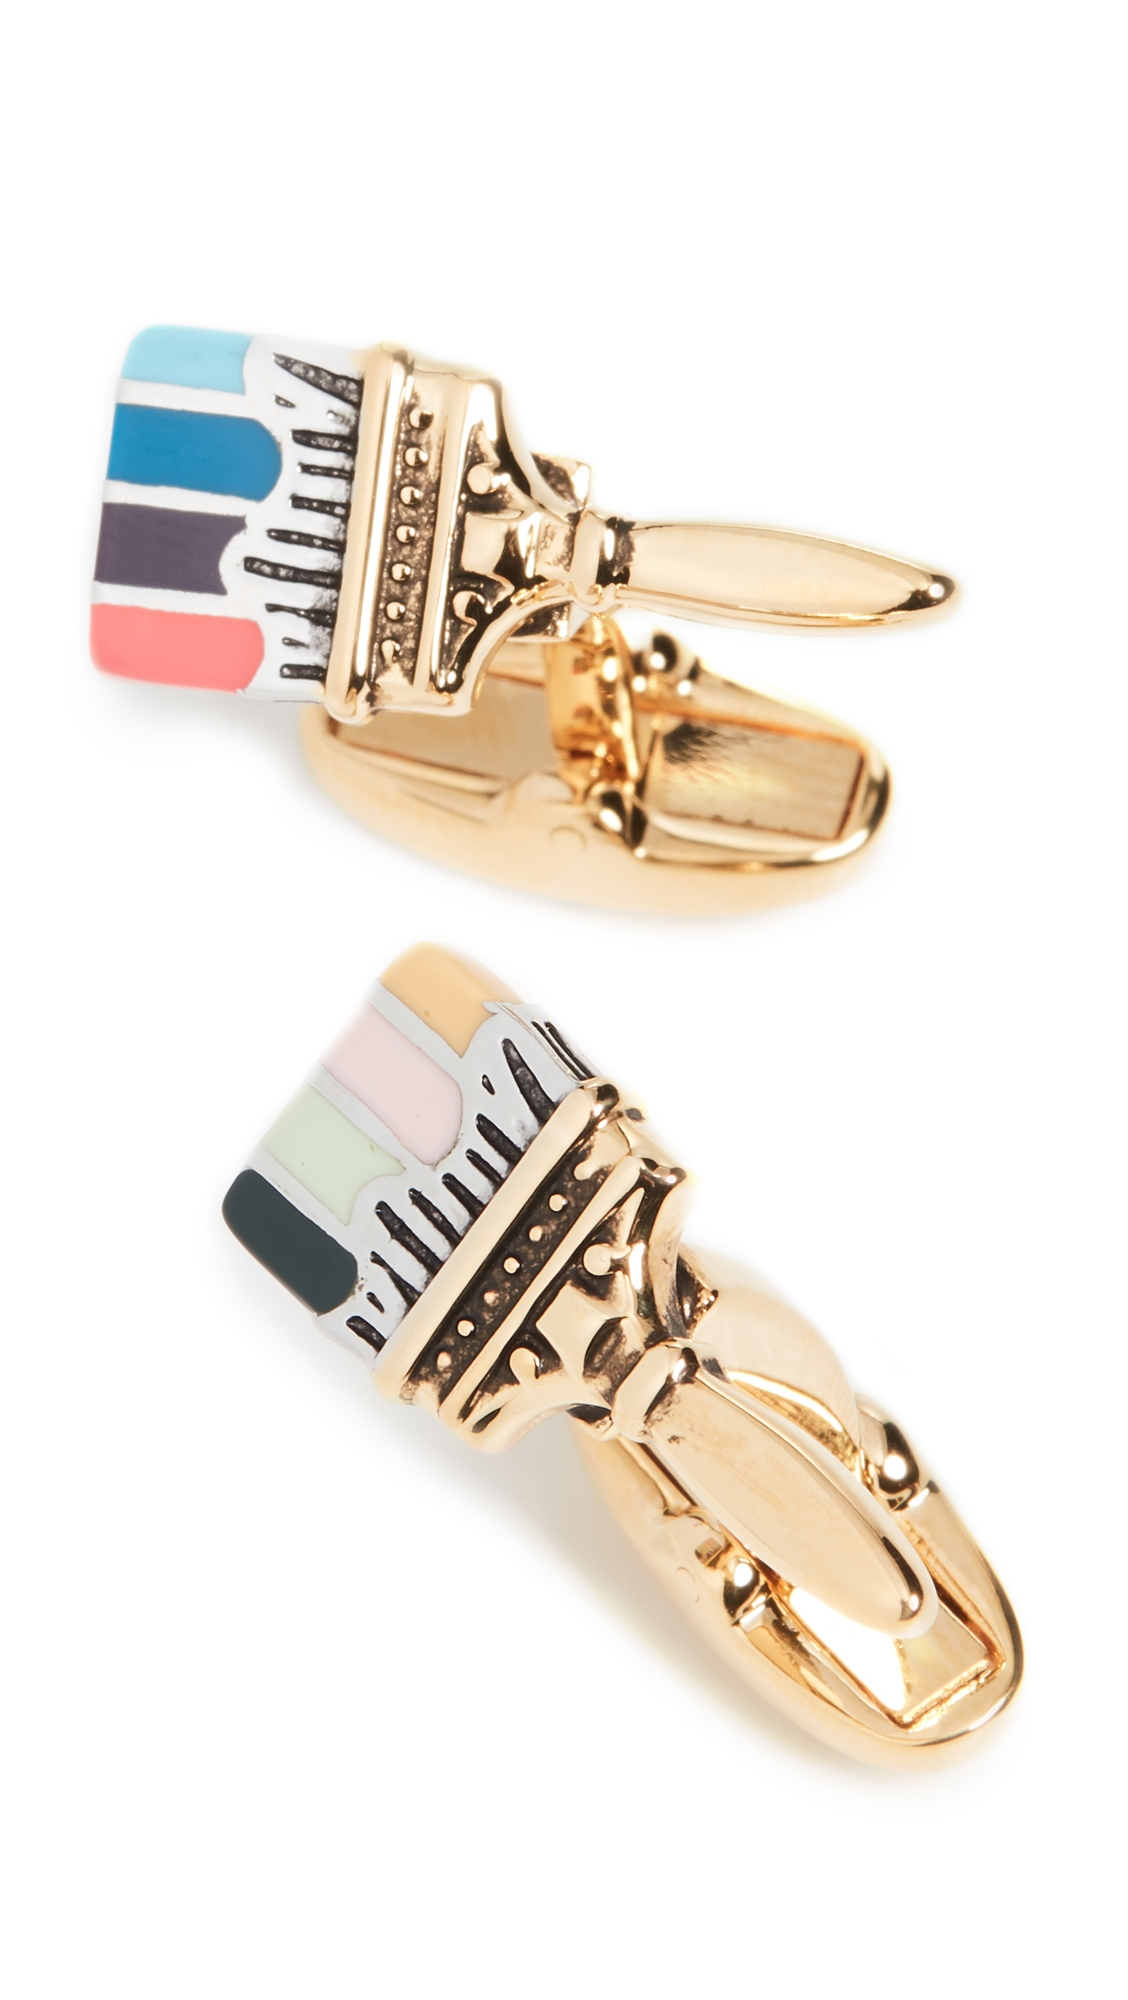 Paul Smith Accessories ARTIST PAINT BRUSH CUFFLINKS